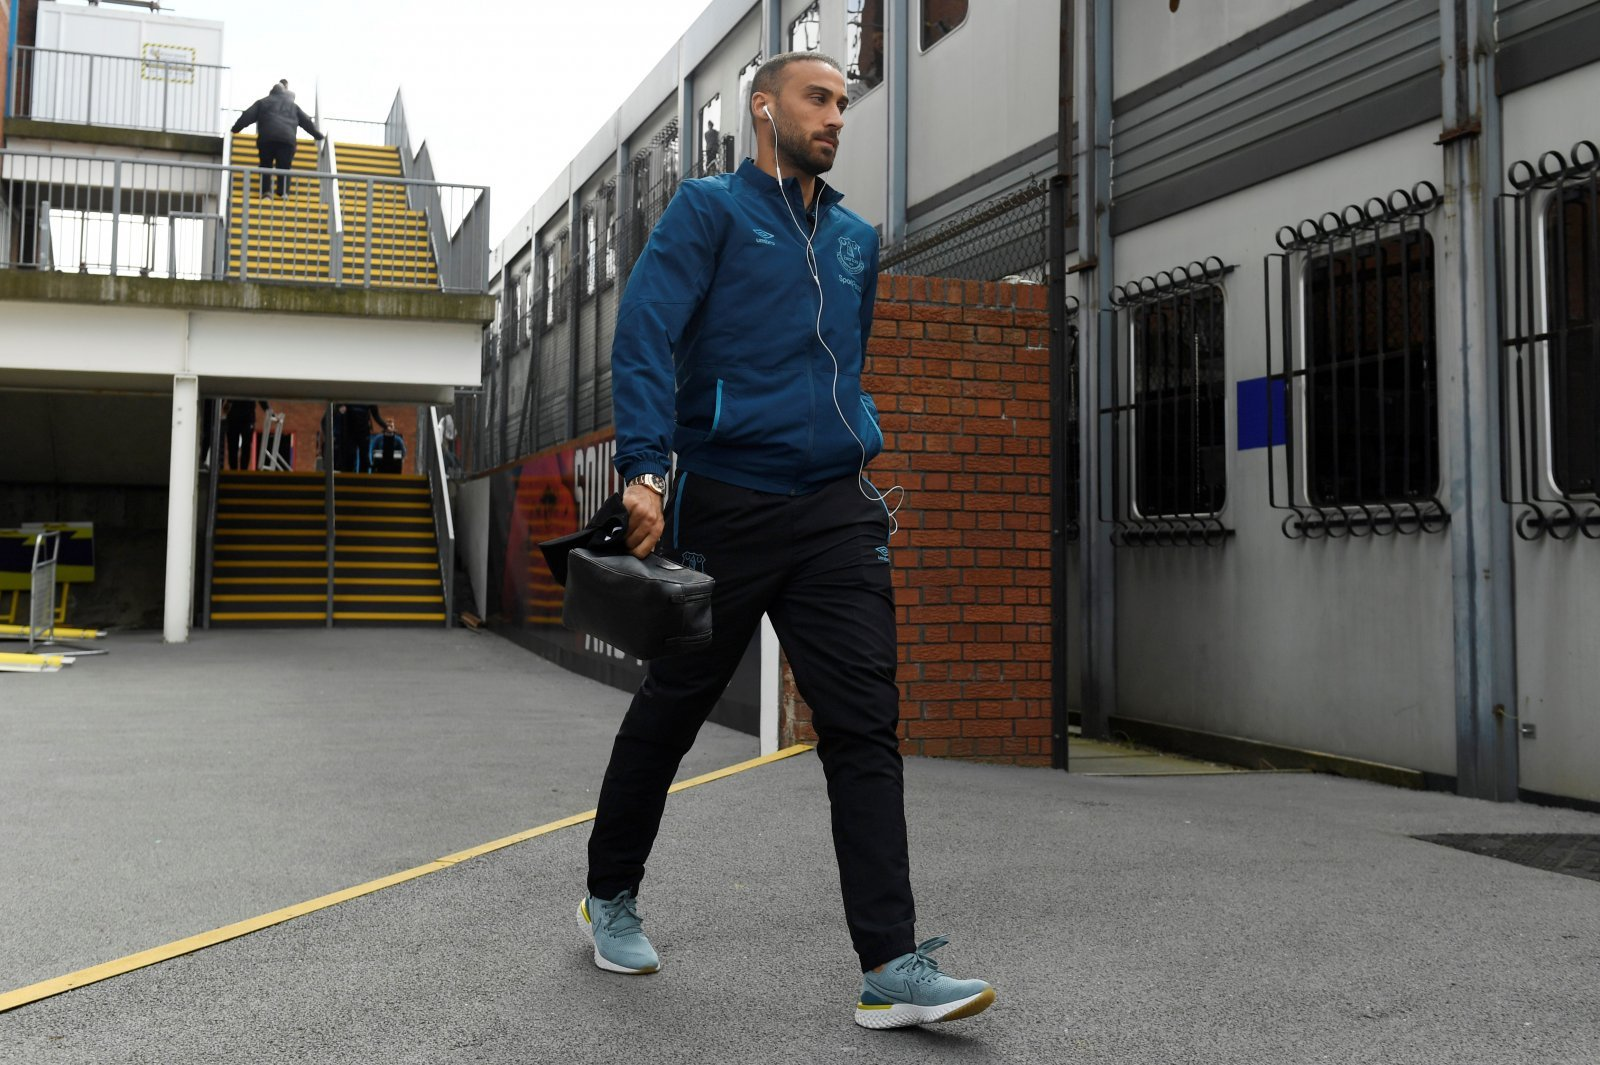 Everton: Tosun determined to stay at Goodison after Calvert-Lewin's struggles